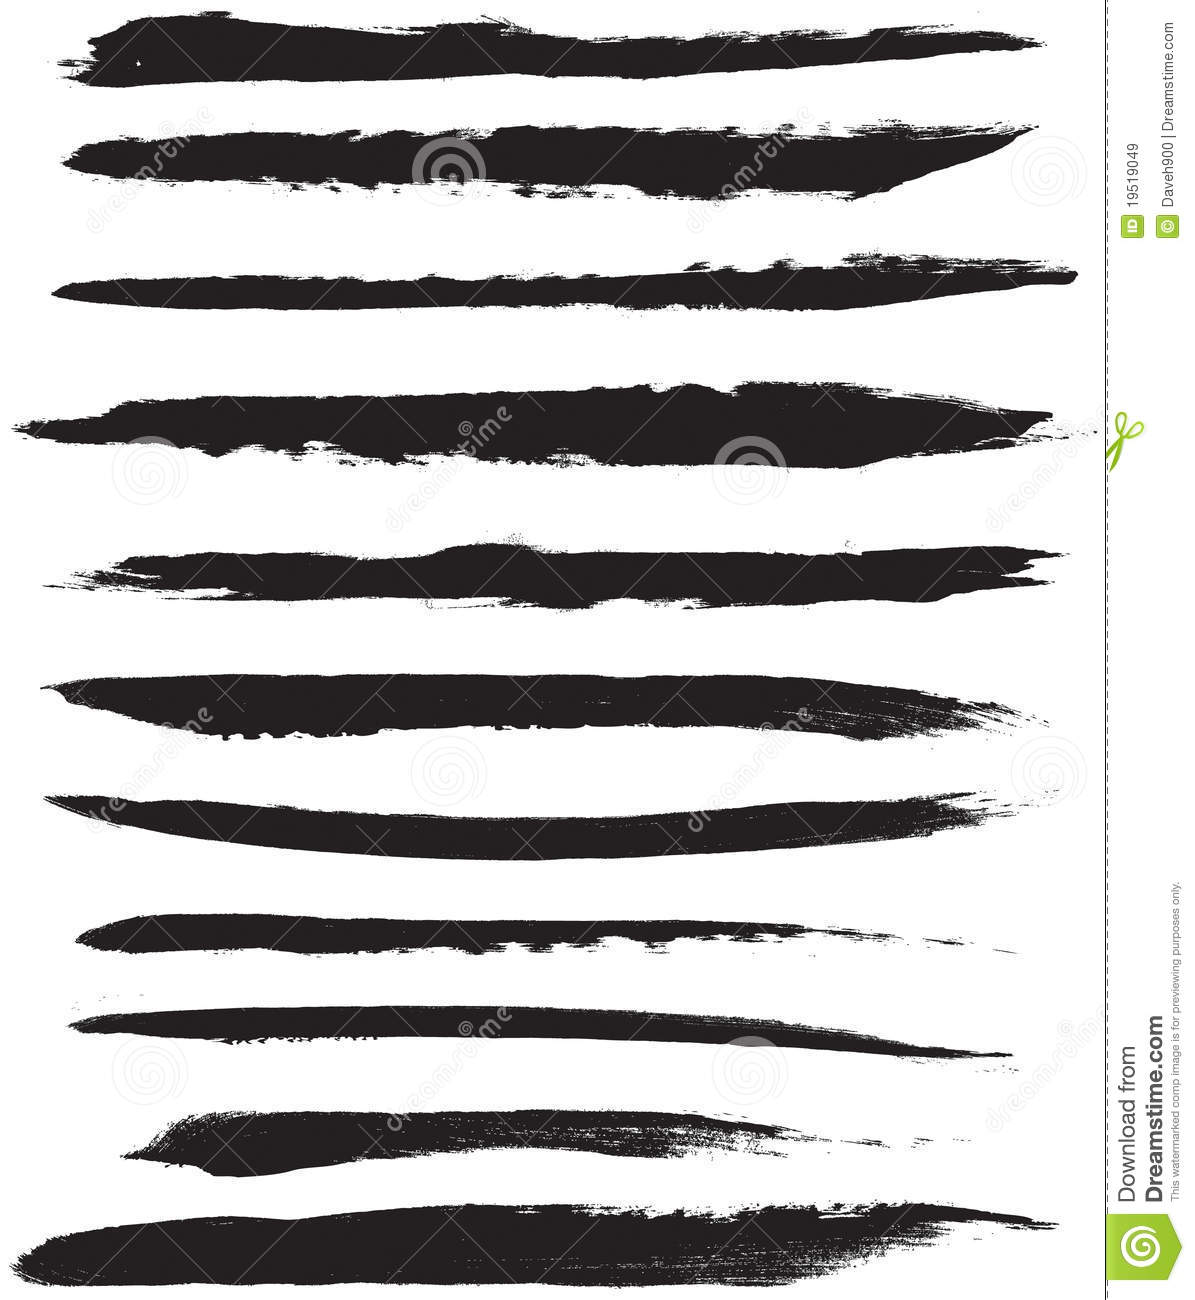 Vector Brush Strokes Royalty Free Stock Images - Image: 19519049